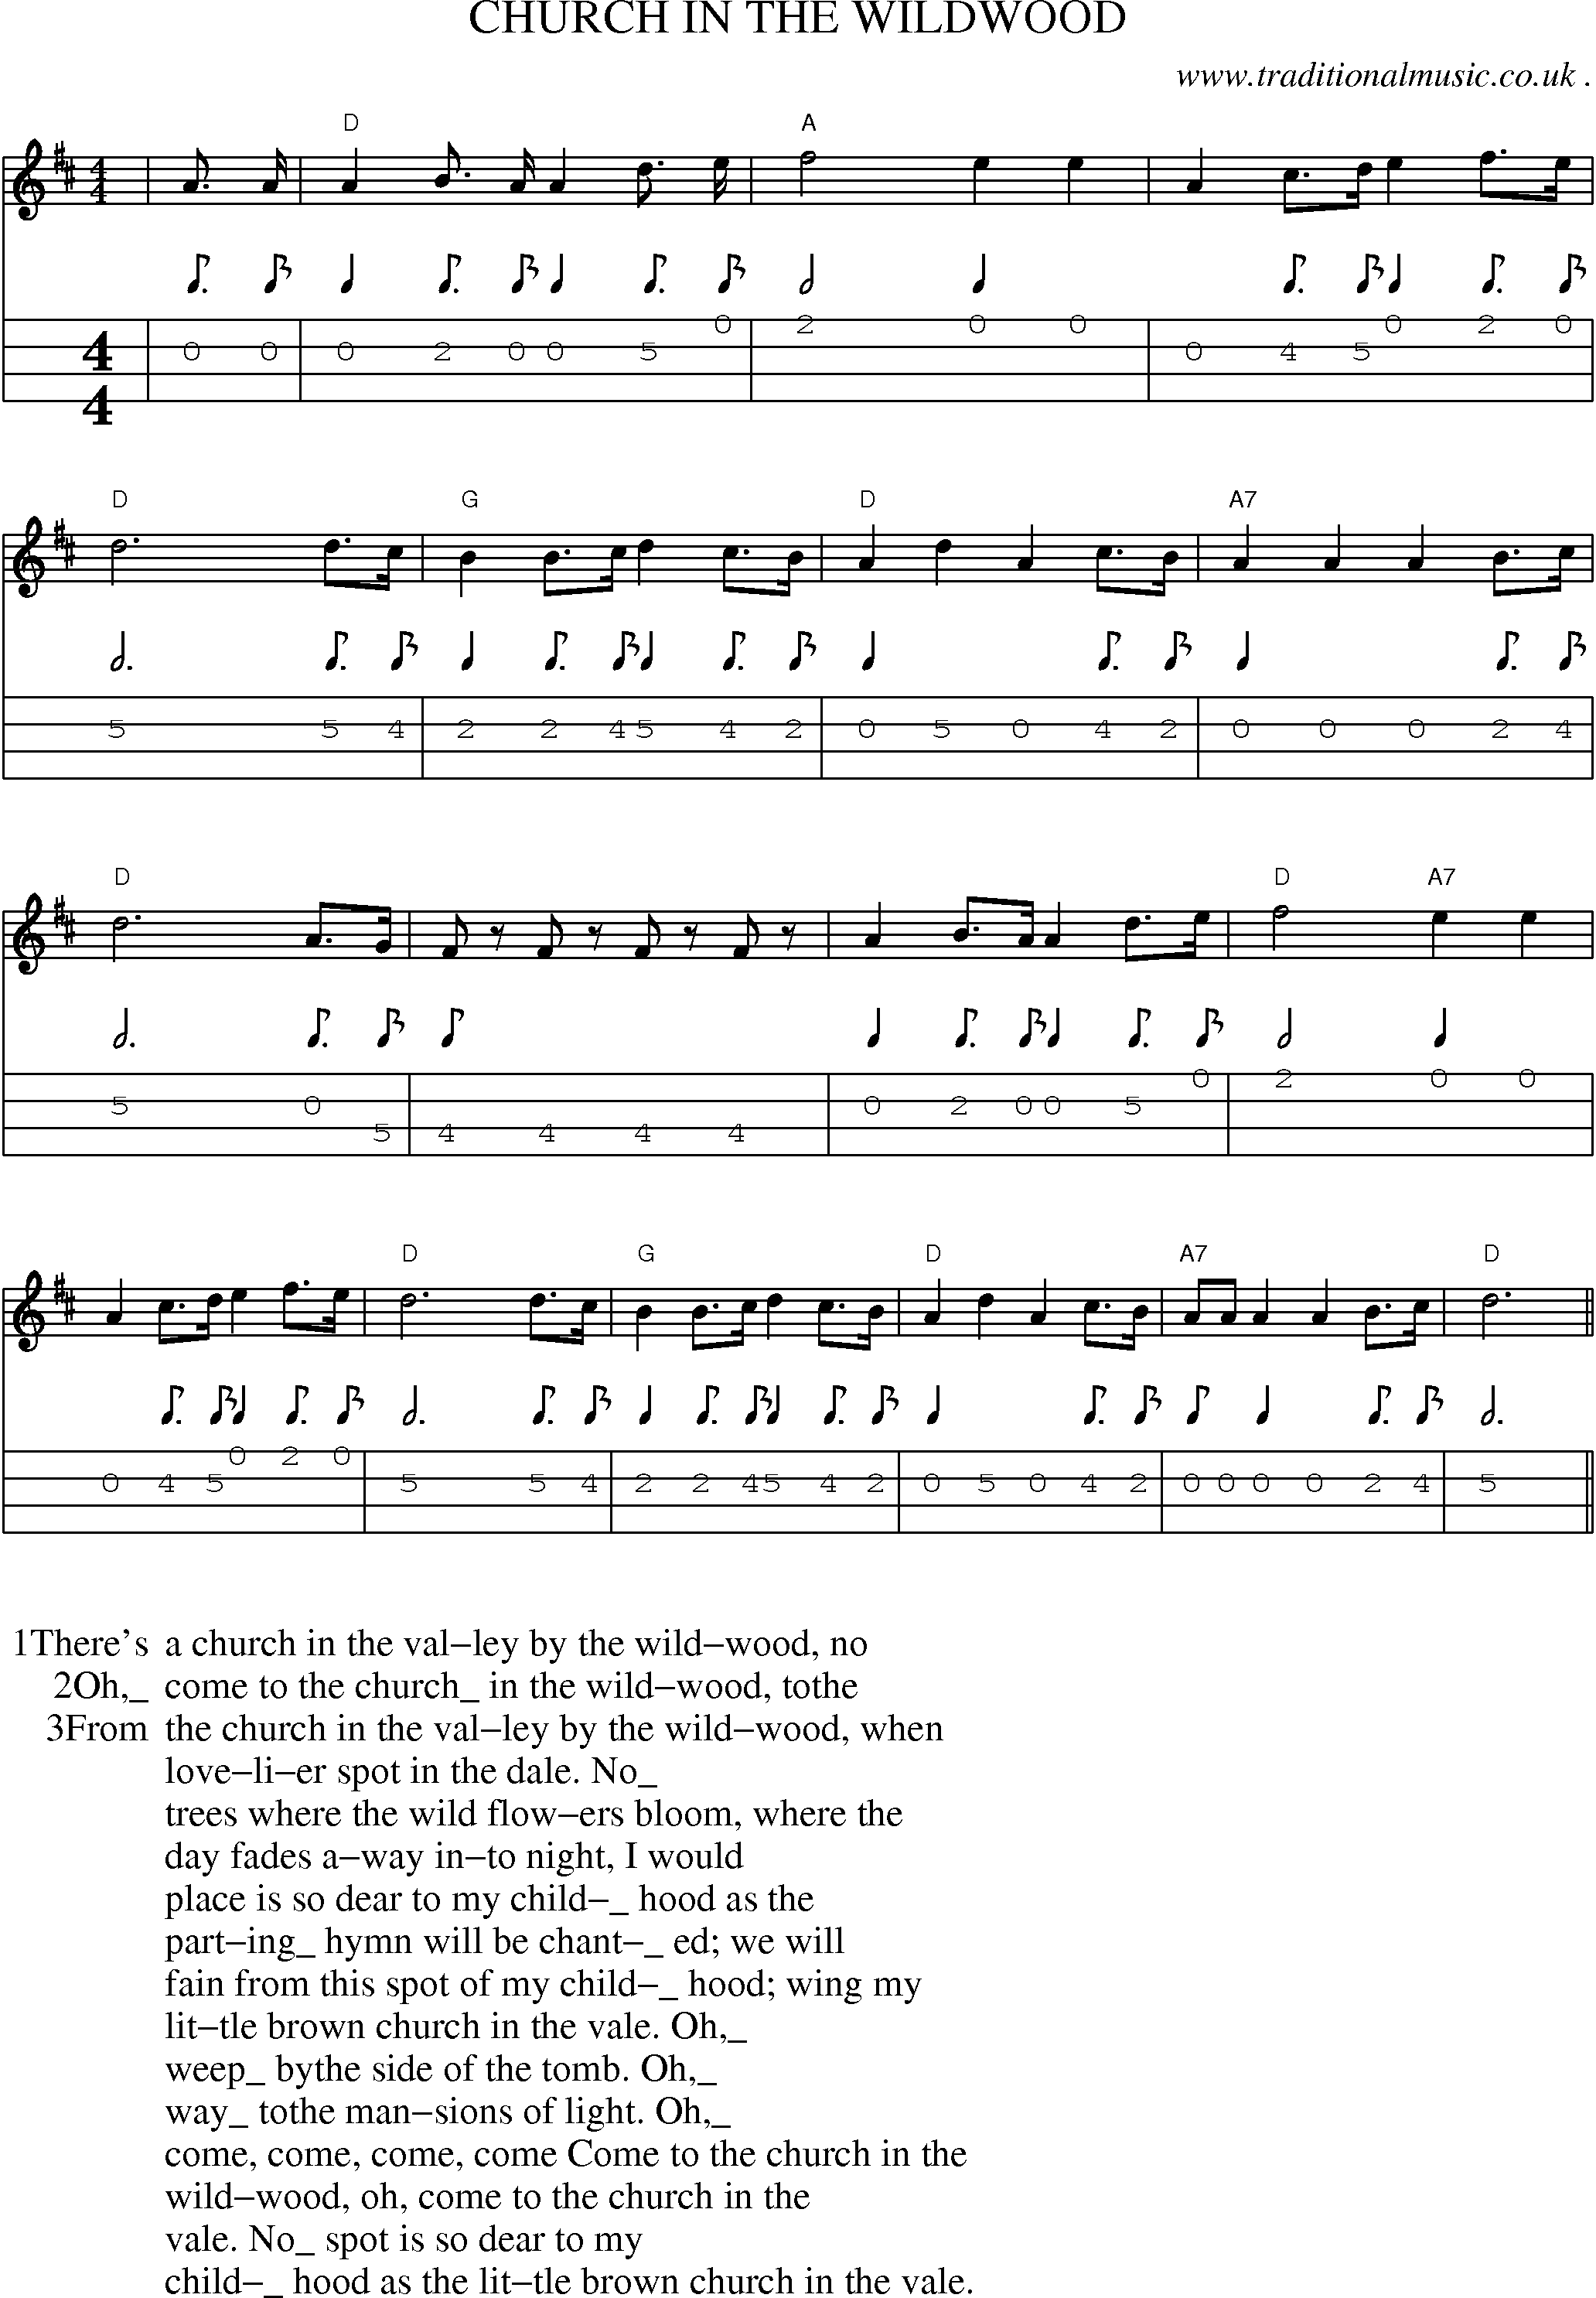 Old-Time Music mandolin tab - Church In The Wildwood